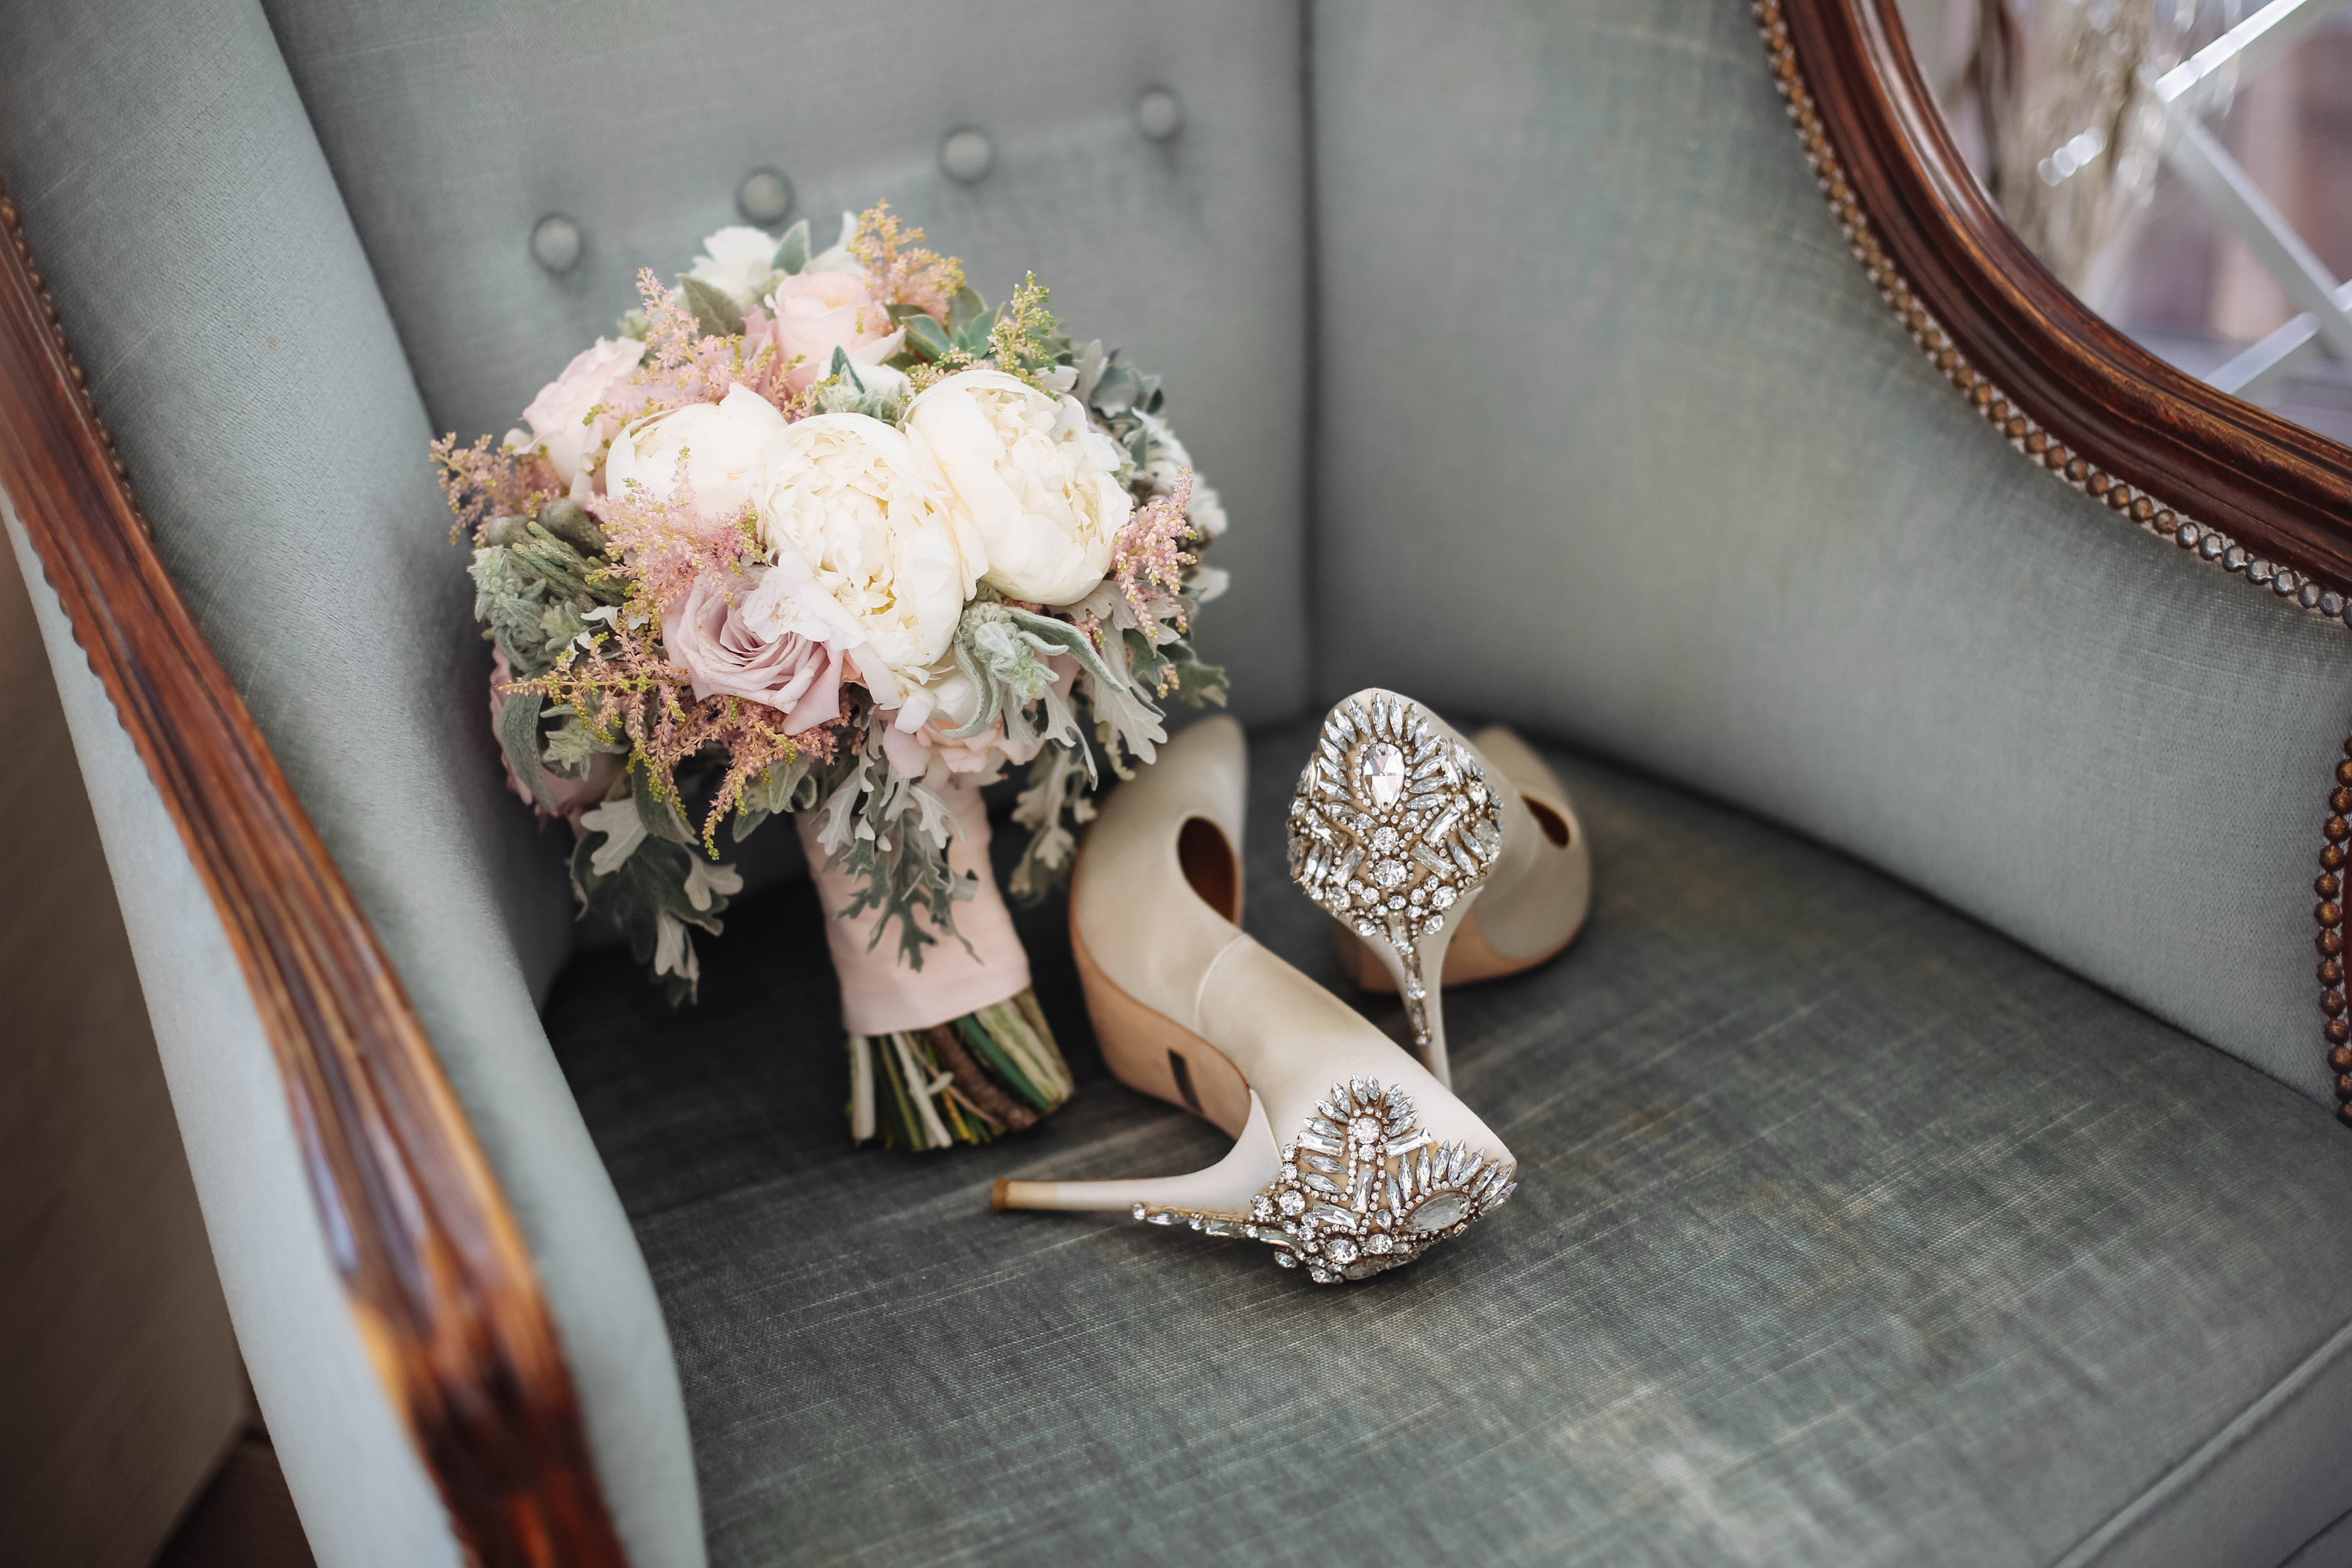 Brides wedding shoes with a bouquet with roses and other flowers on tha arm chair